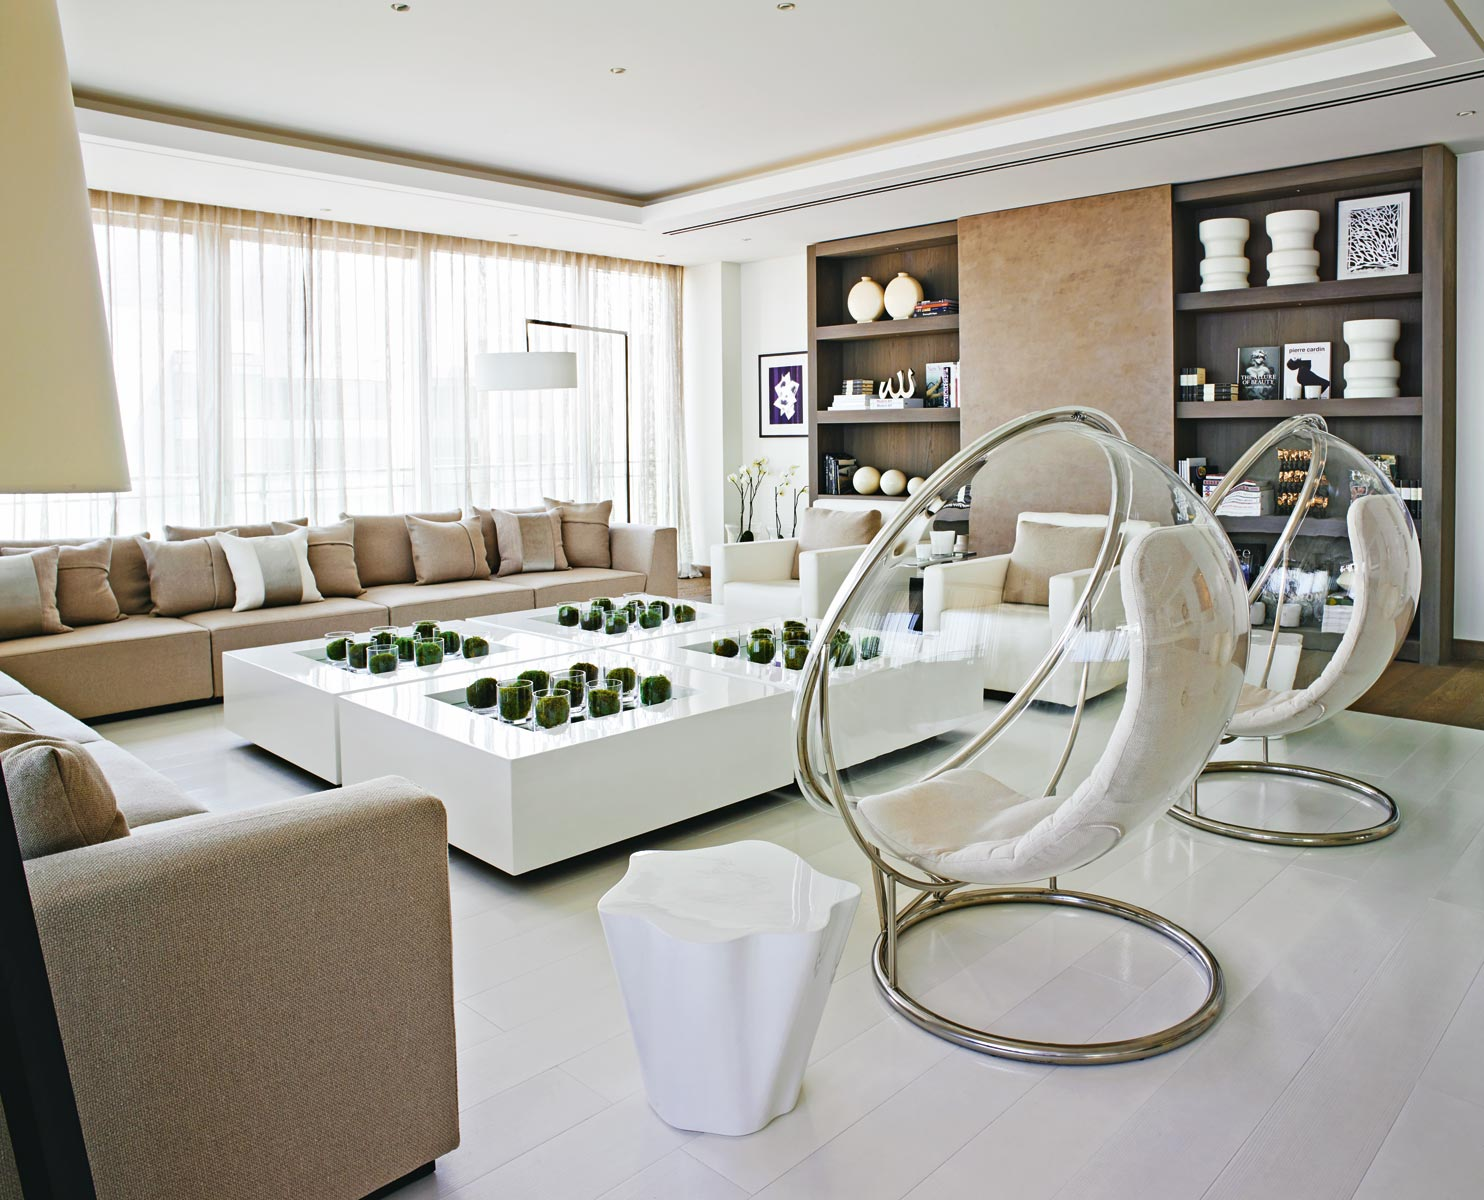 Contemporary living room designed by Kelly Hoppen kelly hoppen Top 10 Kelly Hoppen Design Ideas stunning home beirut2